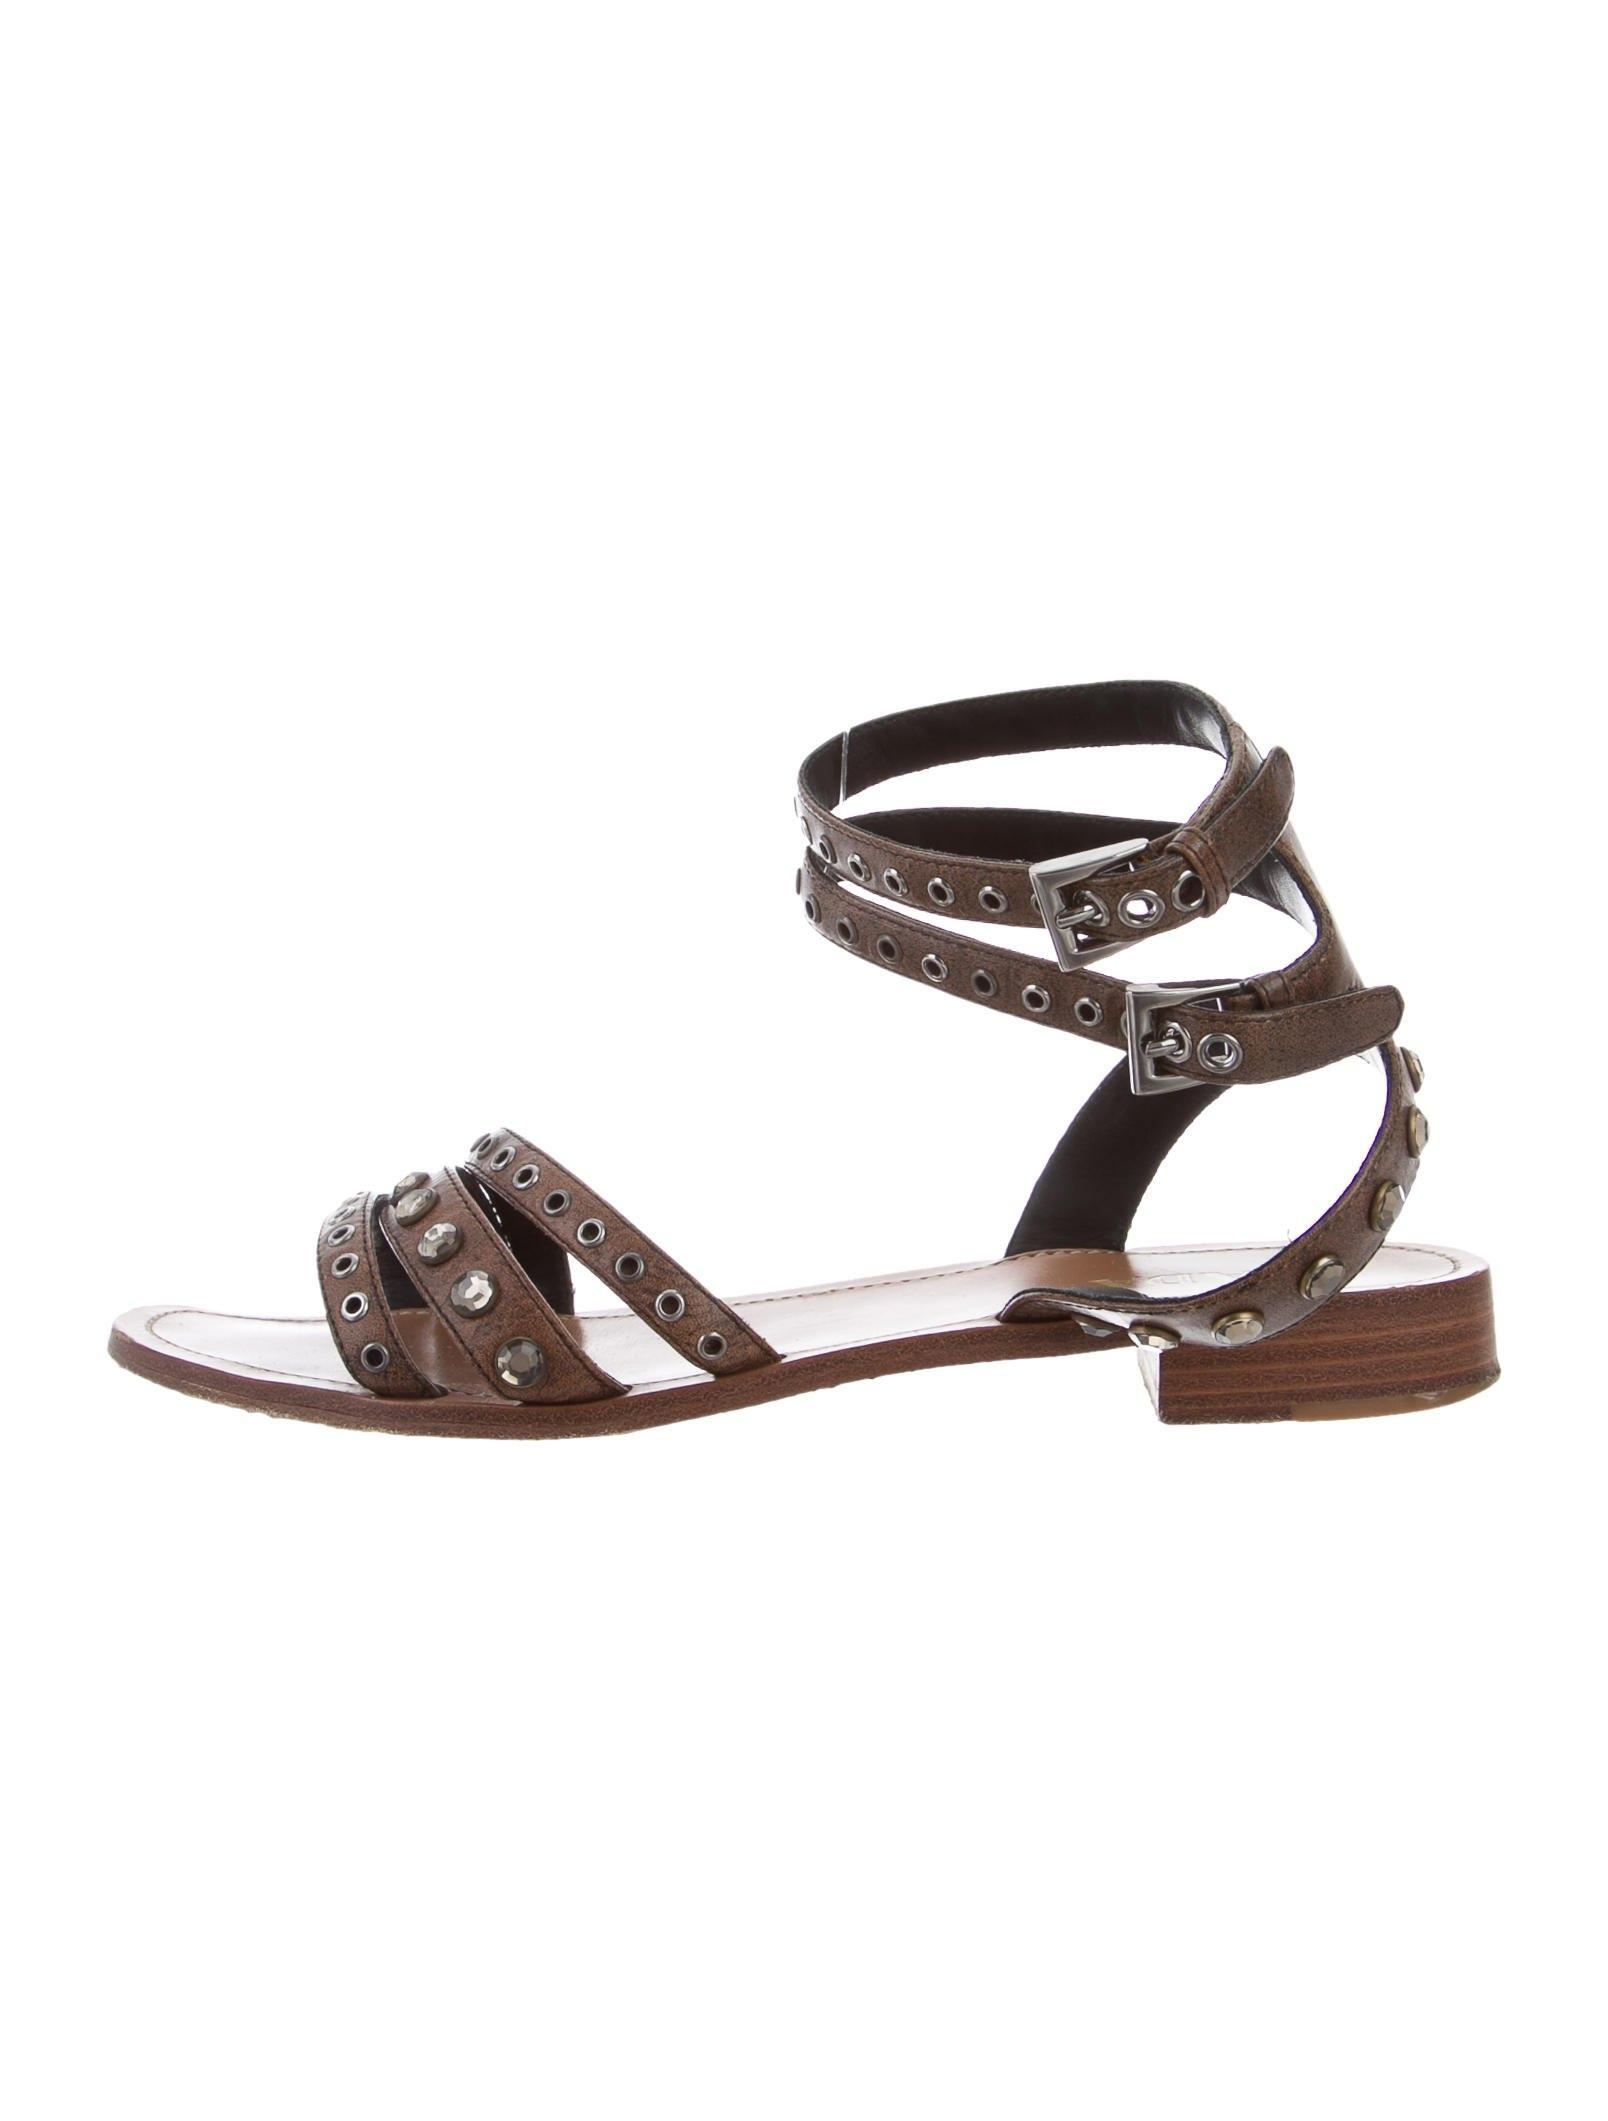 Prada Brown Embellished Ankle Strap Sandals Size EU 40 (Approx. B) US 10) Regular (M, B) (Approx. 7f24cb